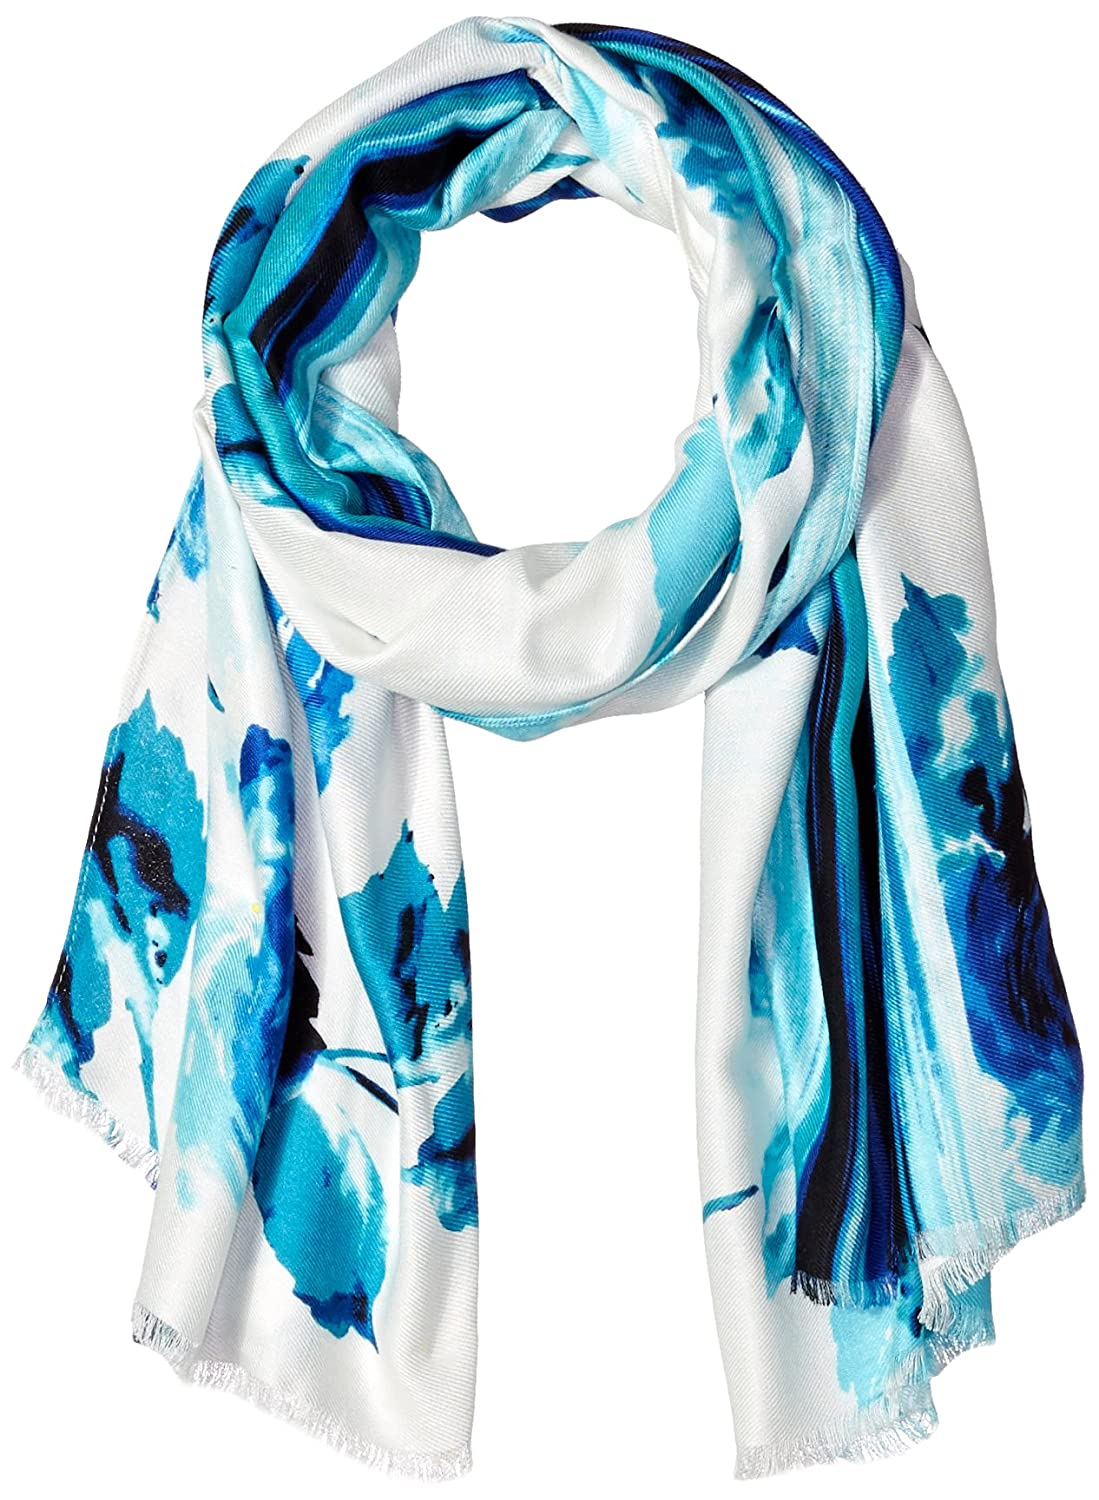 61812df16df55 La Fiorentina Women's Thin Polyester Scarf/Wrap with Lacy Trim ...